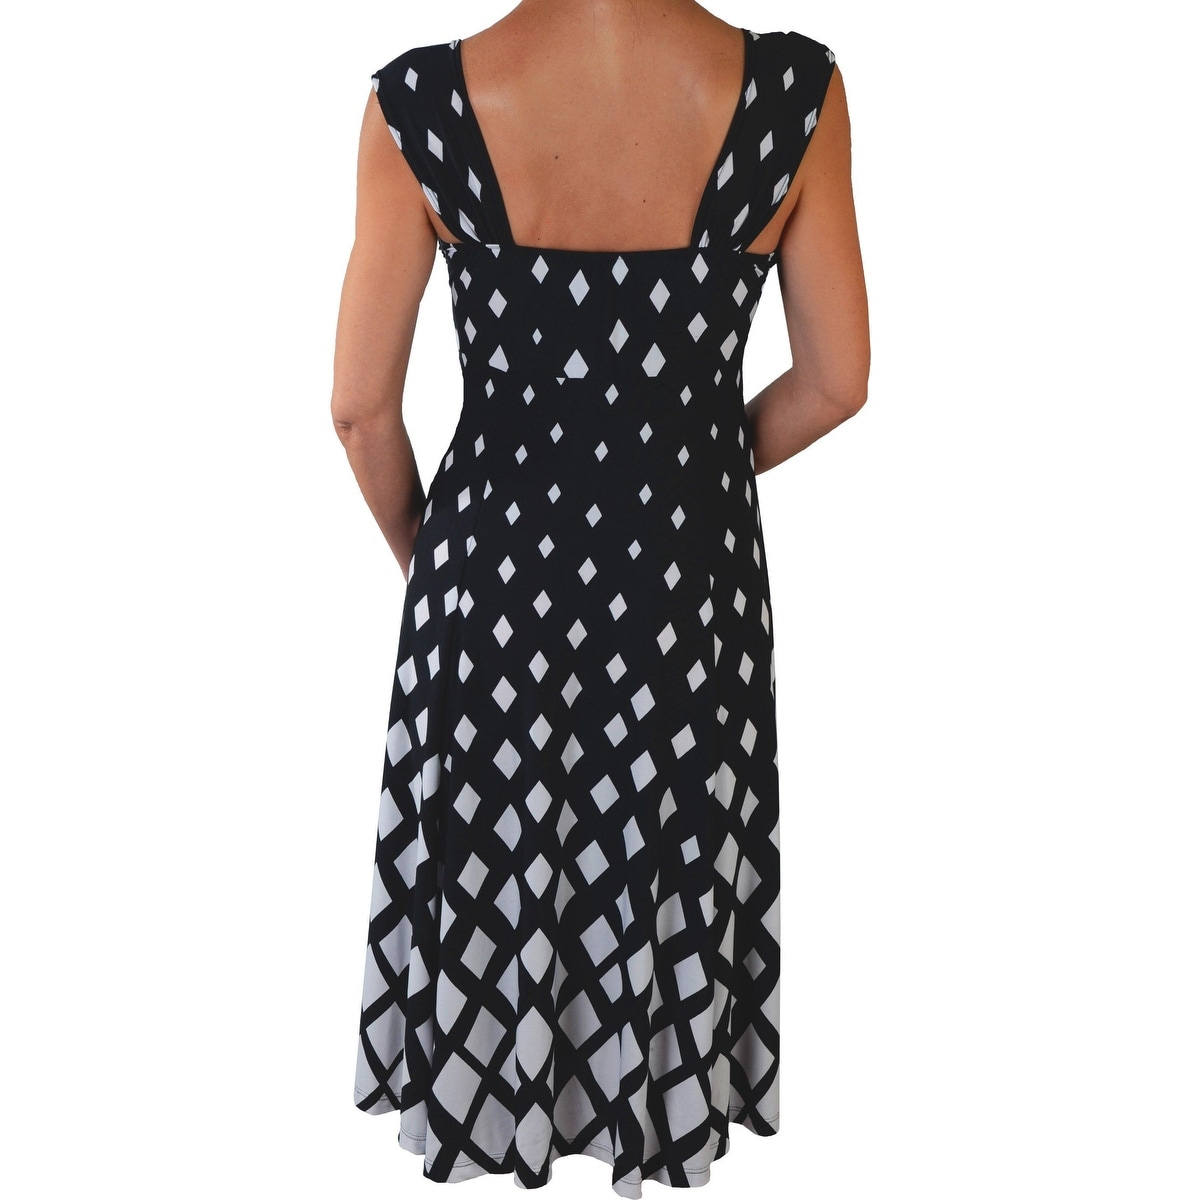 710faa073f3 Shop Funfash Plus Size Women Diamond White Black Cocktail Dress Made in USA  - Ships To Canada - Overstock.ca - 14019375